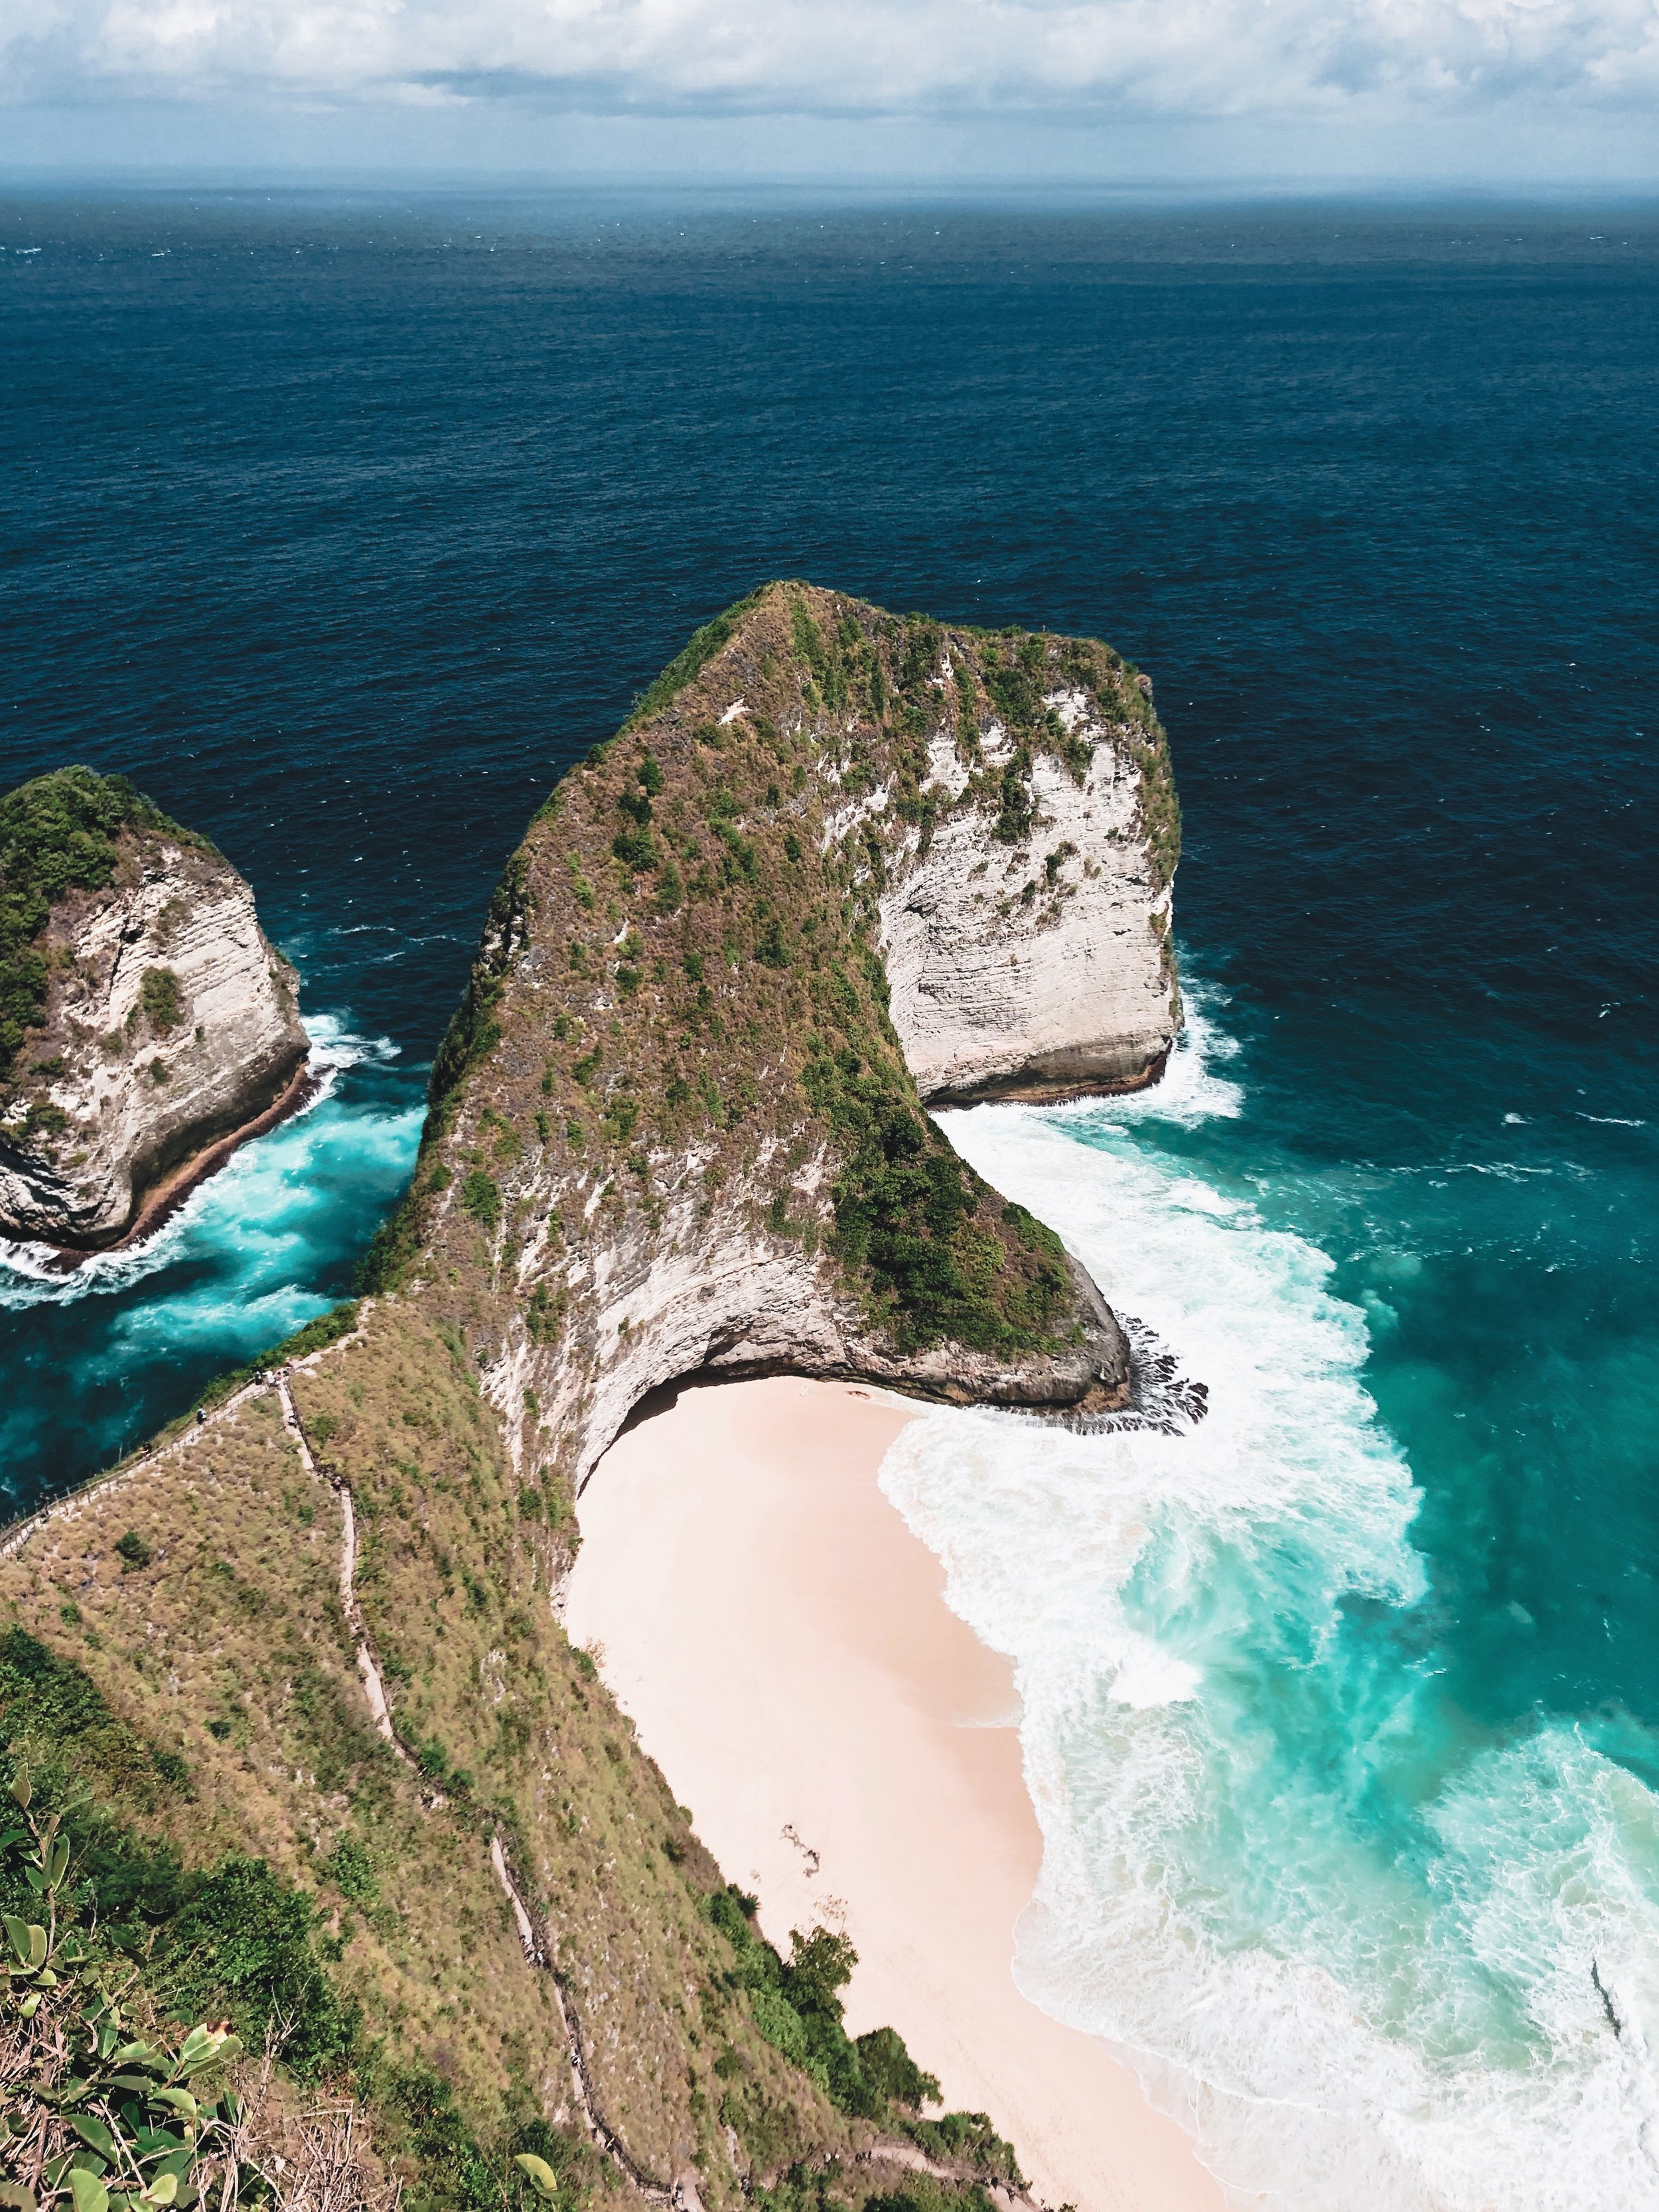 Kelingking viewpoint, Nusa Penida, Indonesia